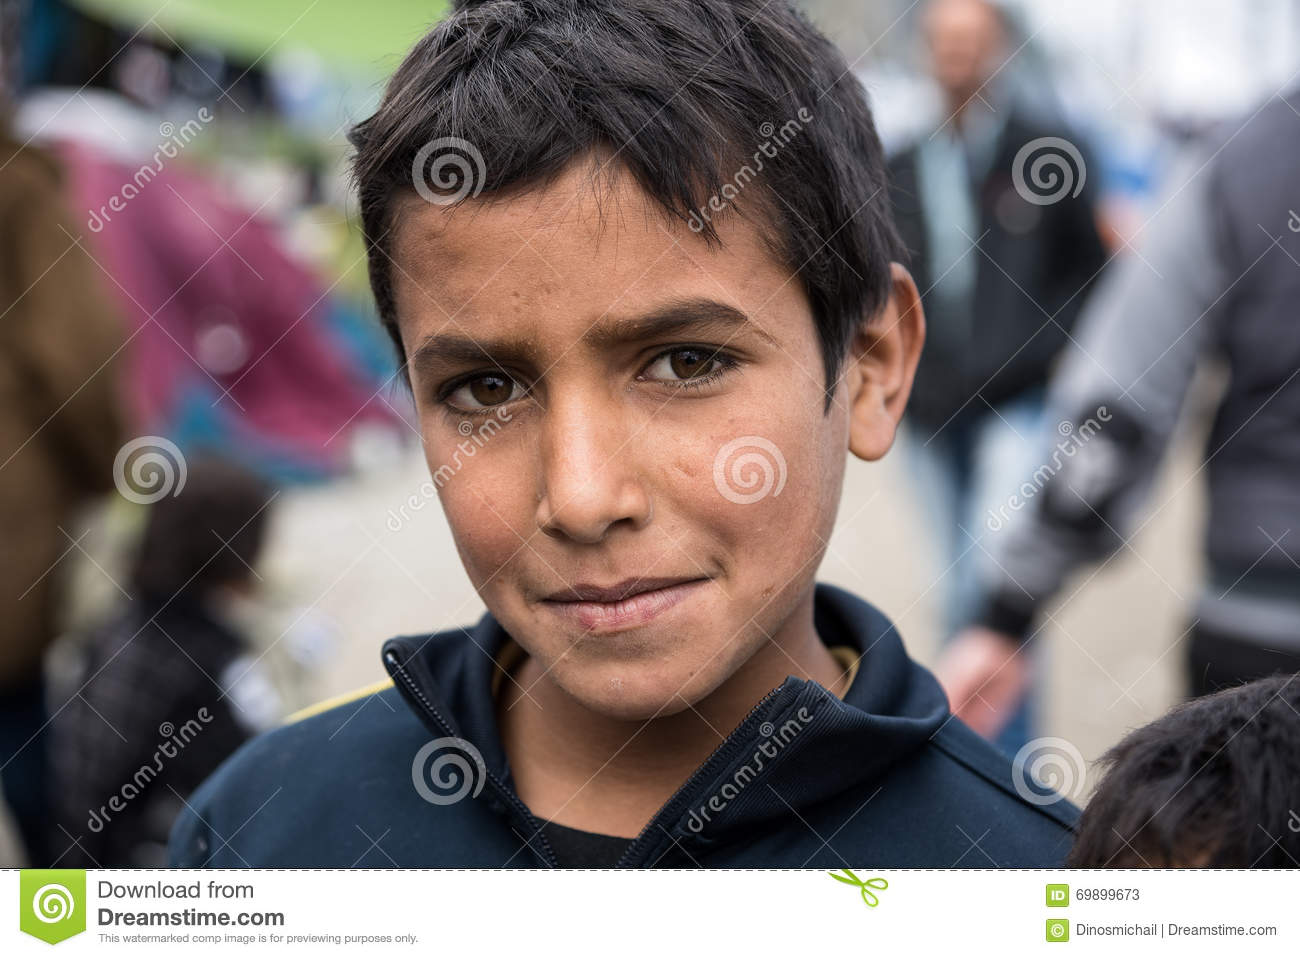 Boy in refugee camp in Greece